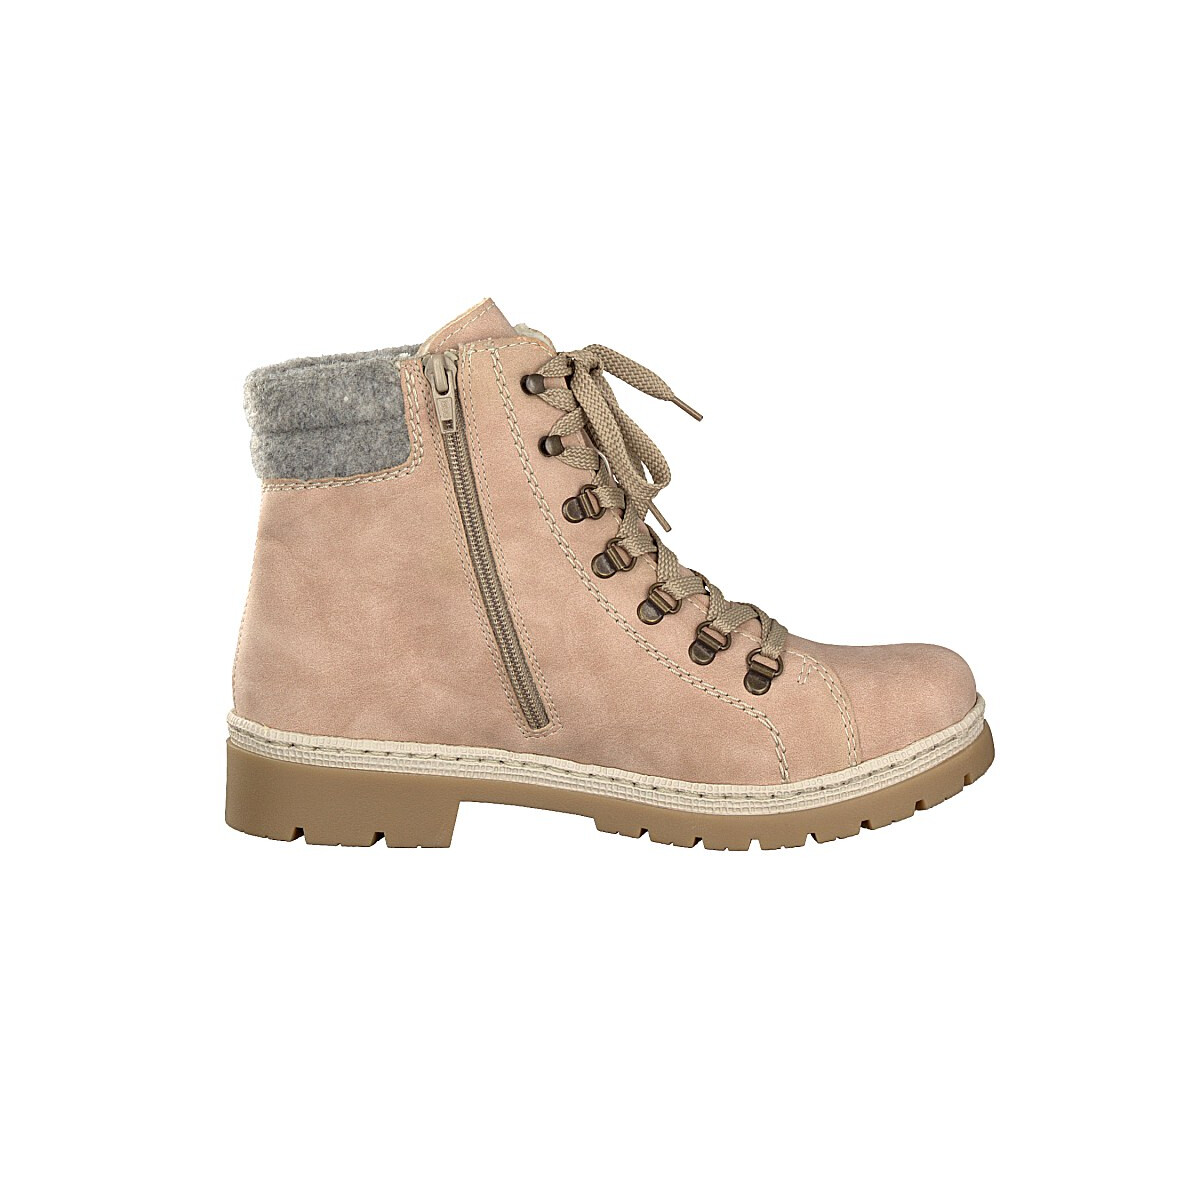 Rieker women lace up boot rose Y9430 32